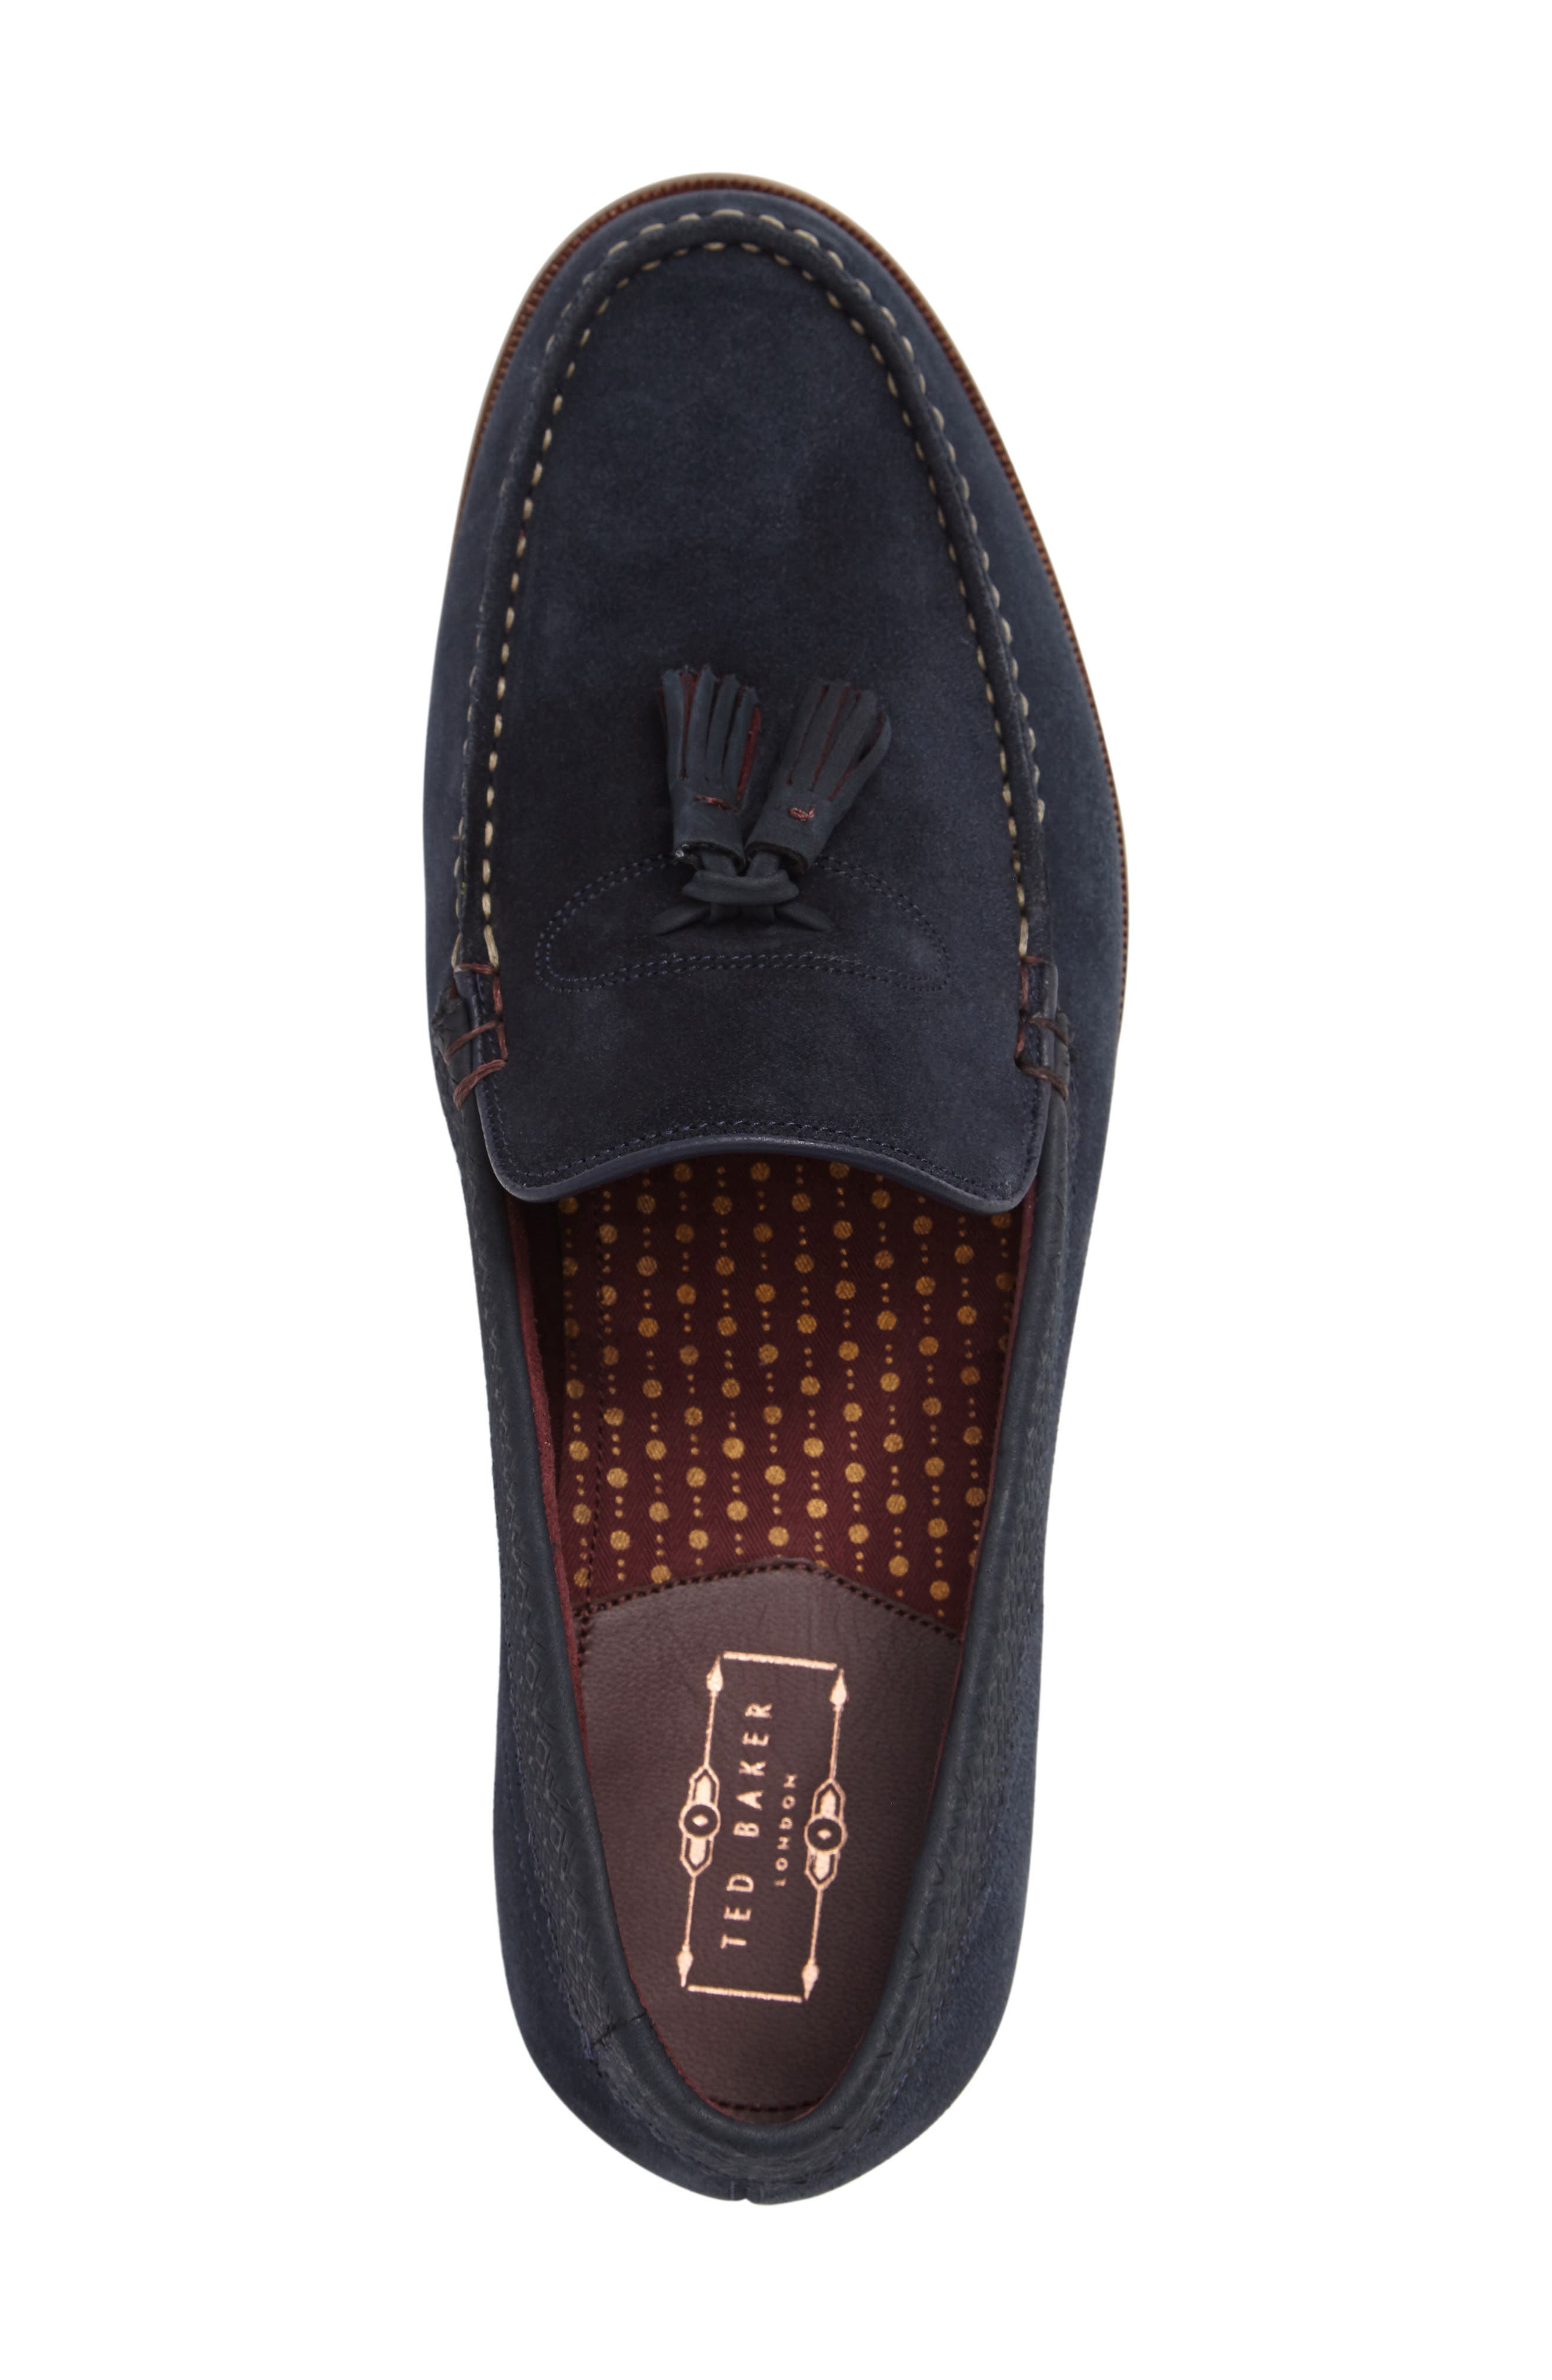 Dougge Tassel Loafer,                             Alternate thumbnail 16, color,